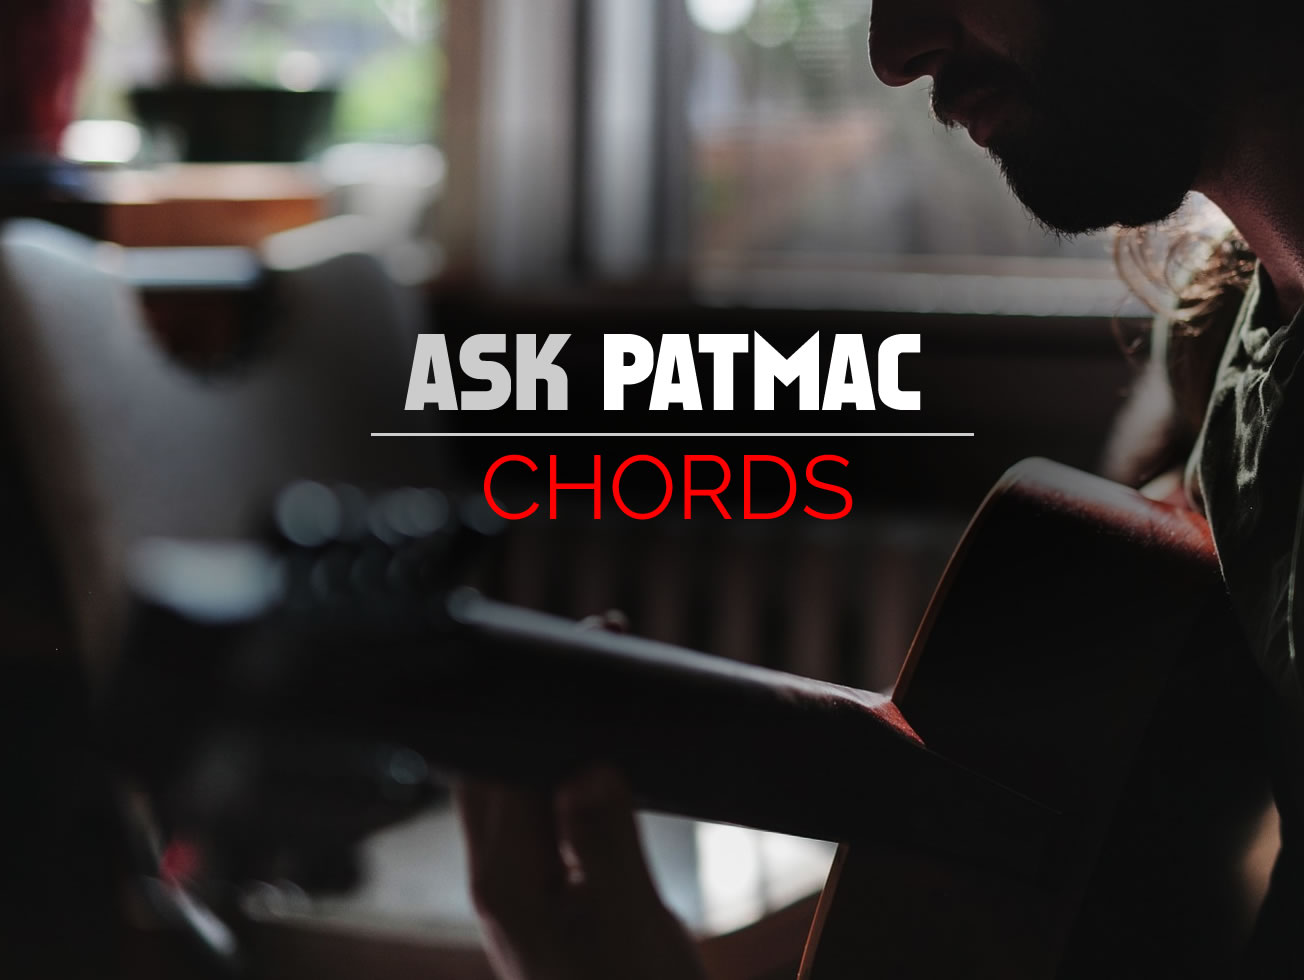 Ap 012 What Are The Biggest Chord Mistakes For Beginner Guitar